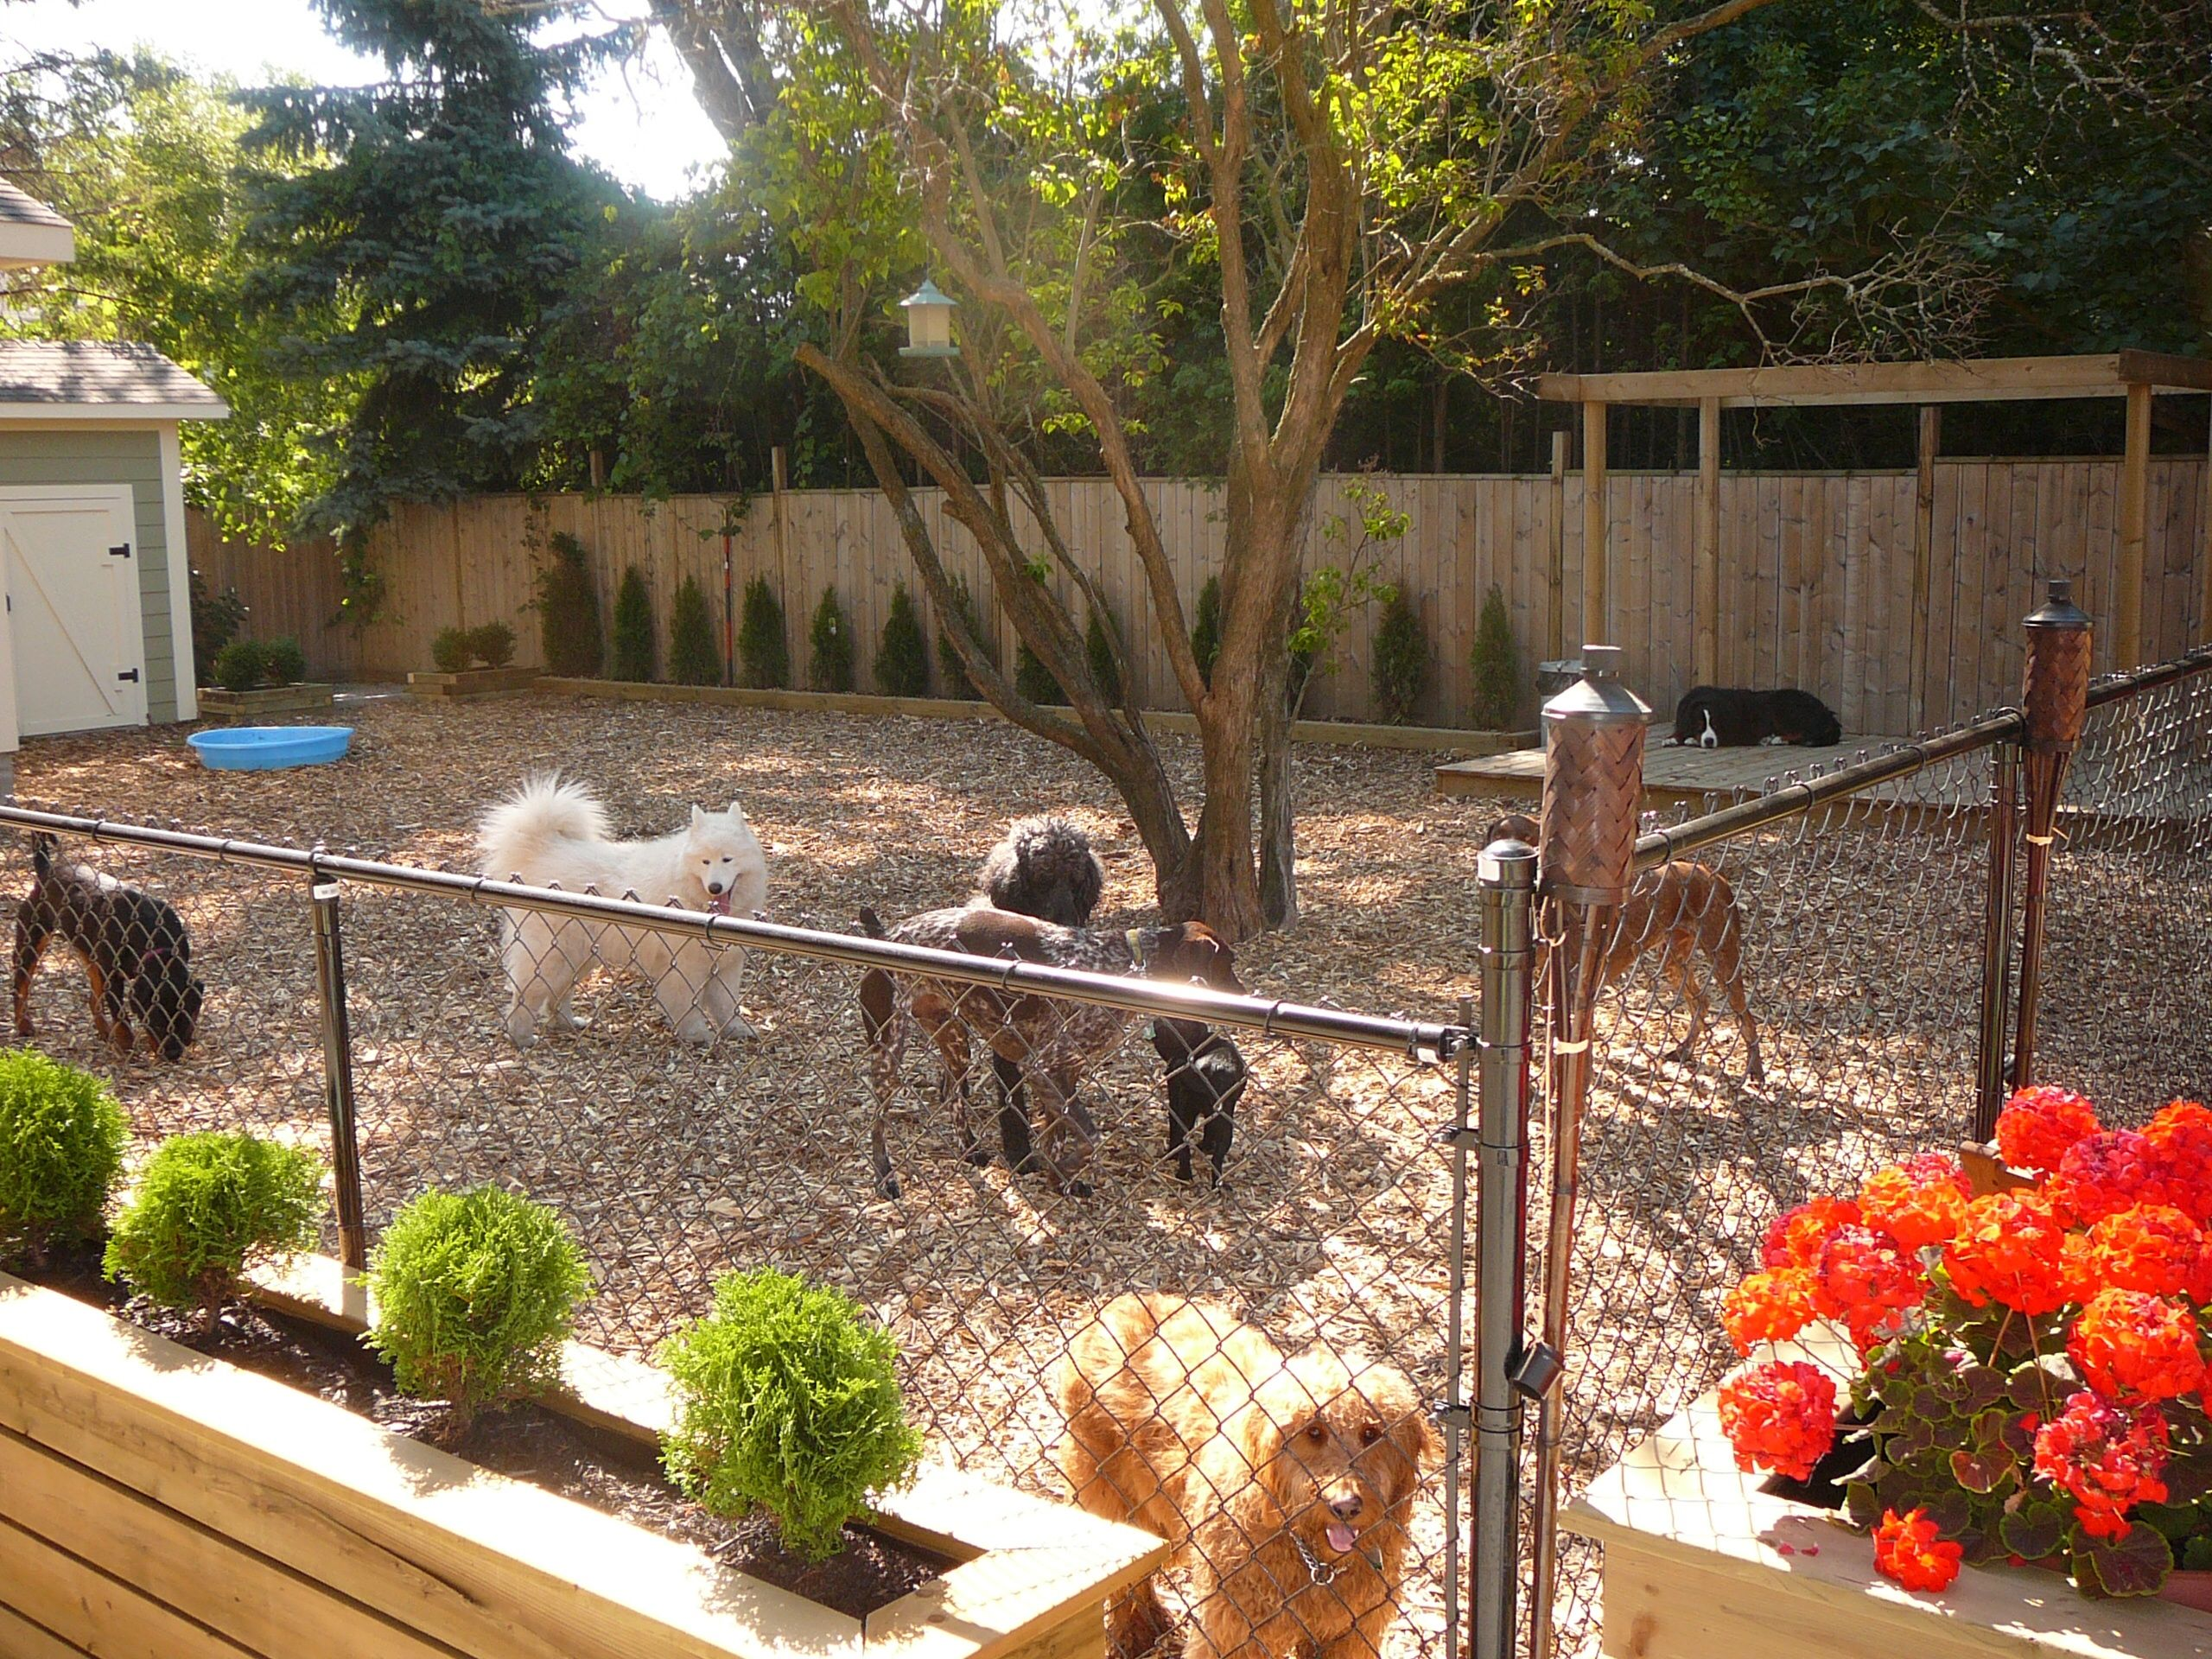 the dogs now have a safe and secure area to play outside this